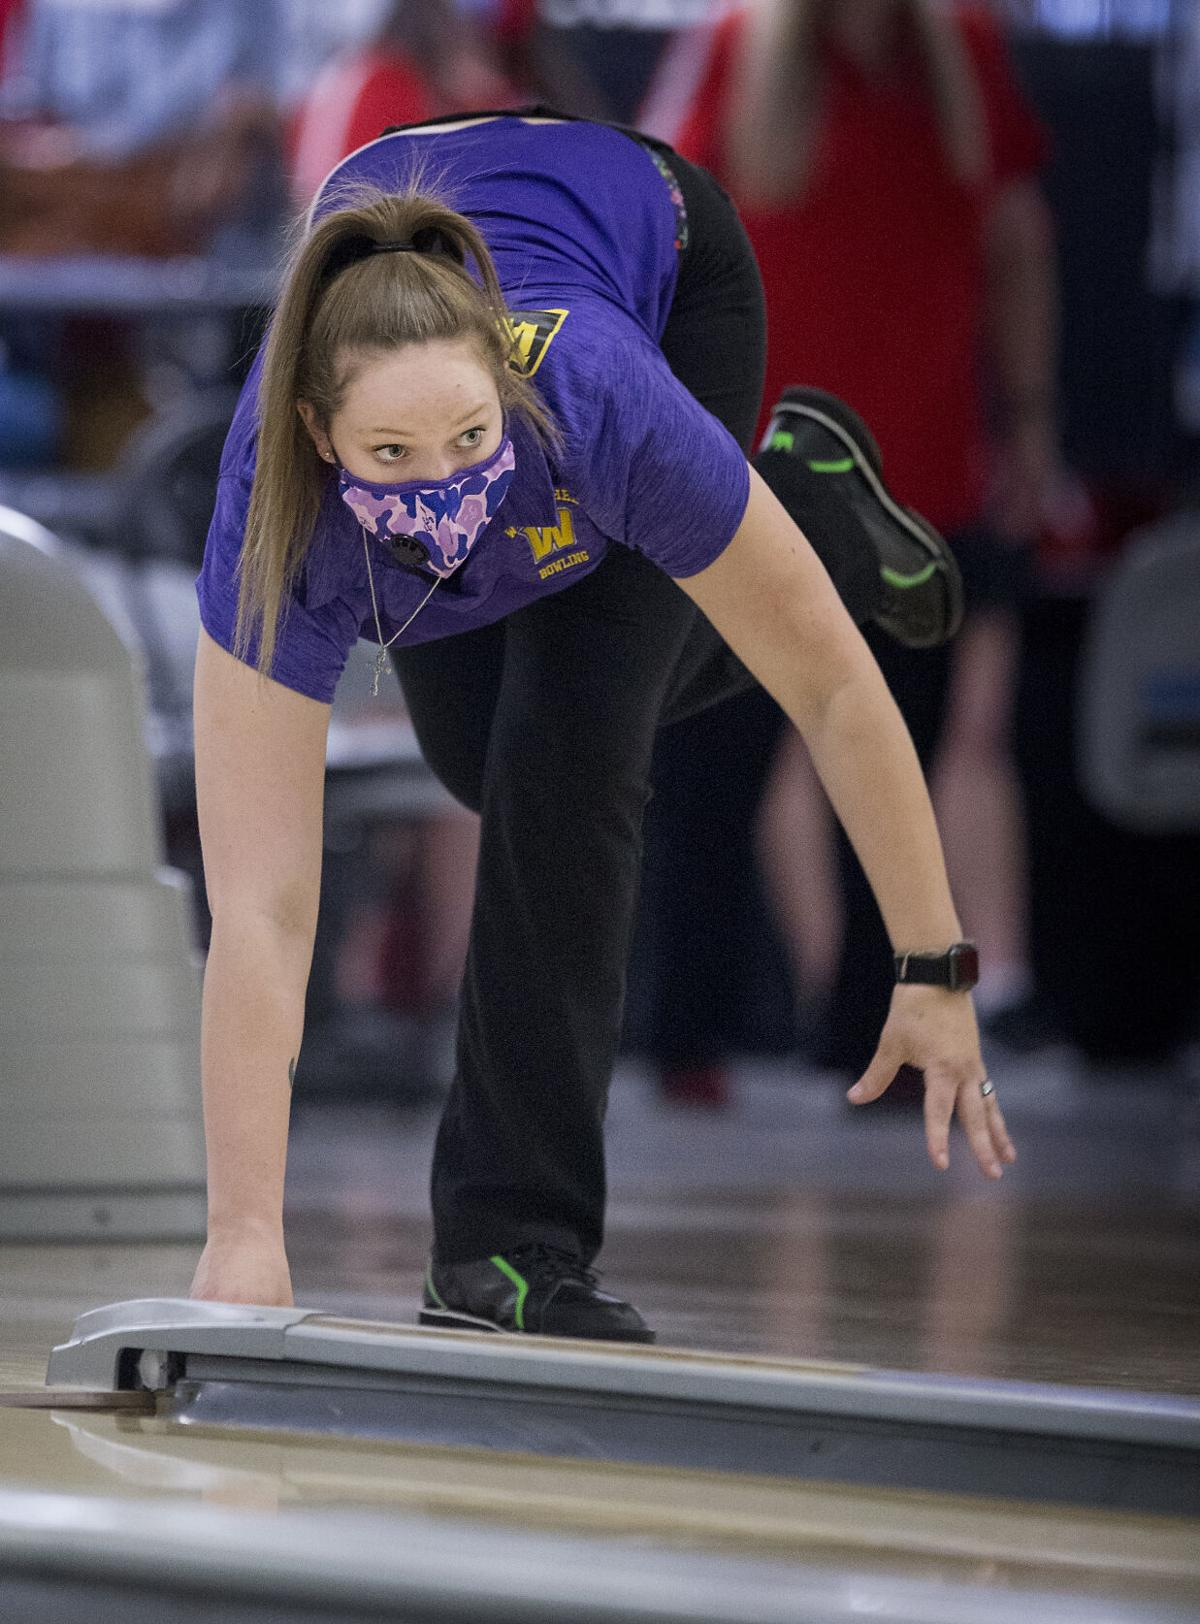 210527-sportslocal-whsehsbowling 01.jpg